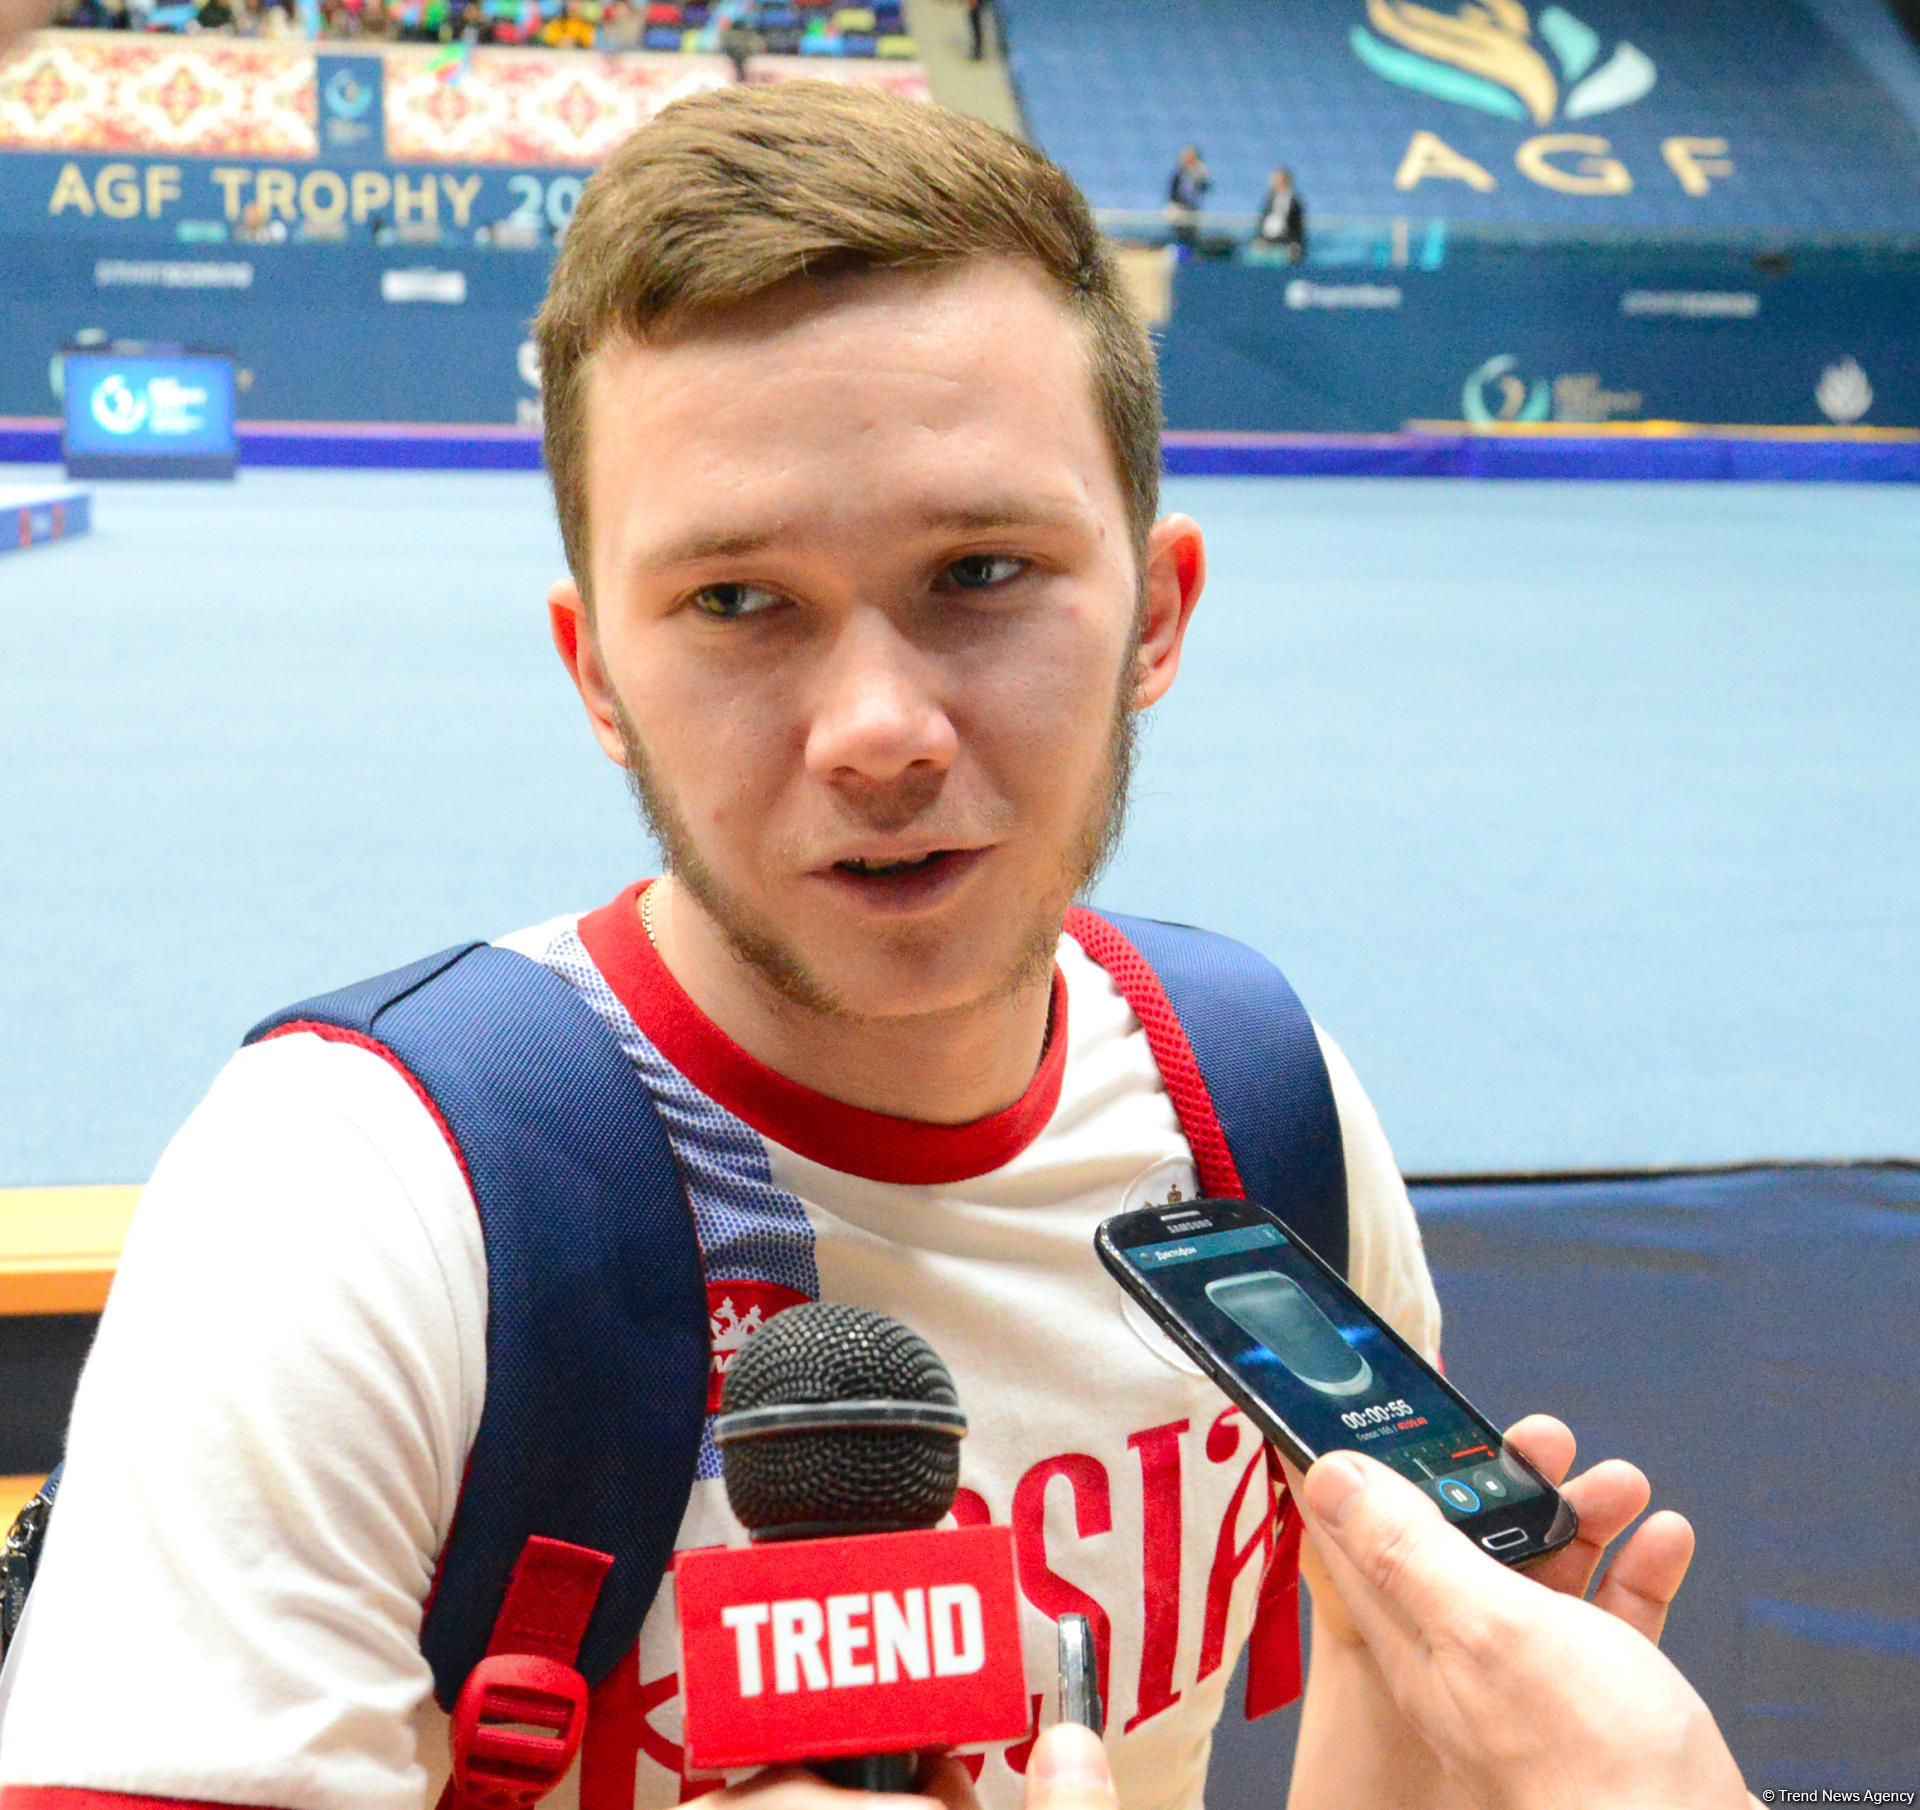 Russian gymnast looks forward to summer competitions in Baku